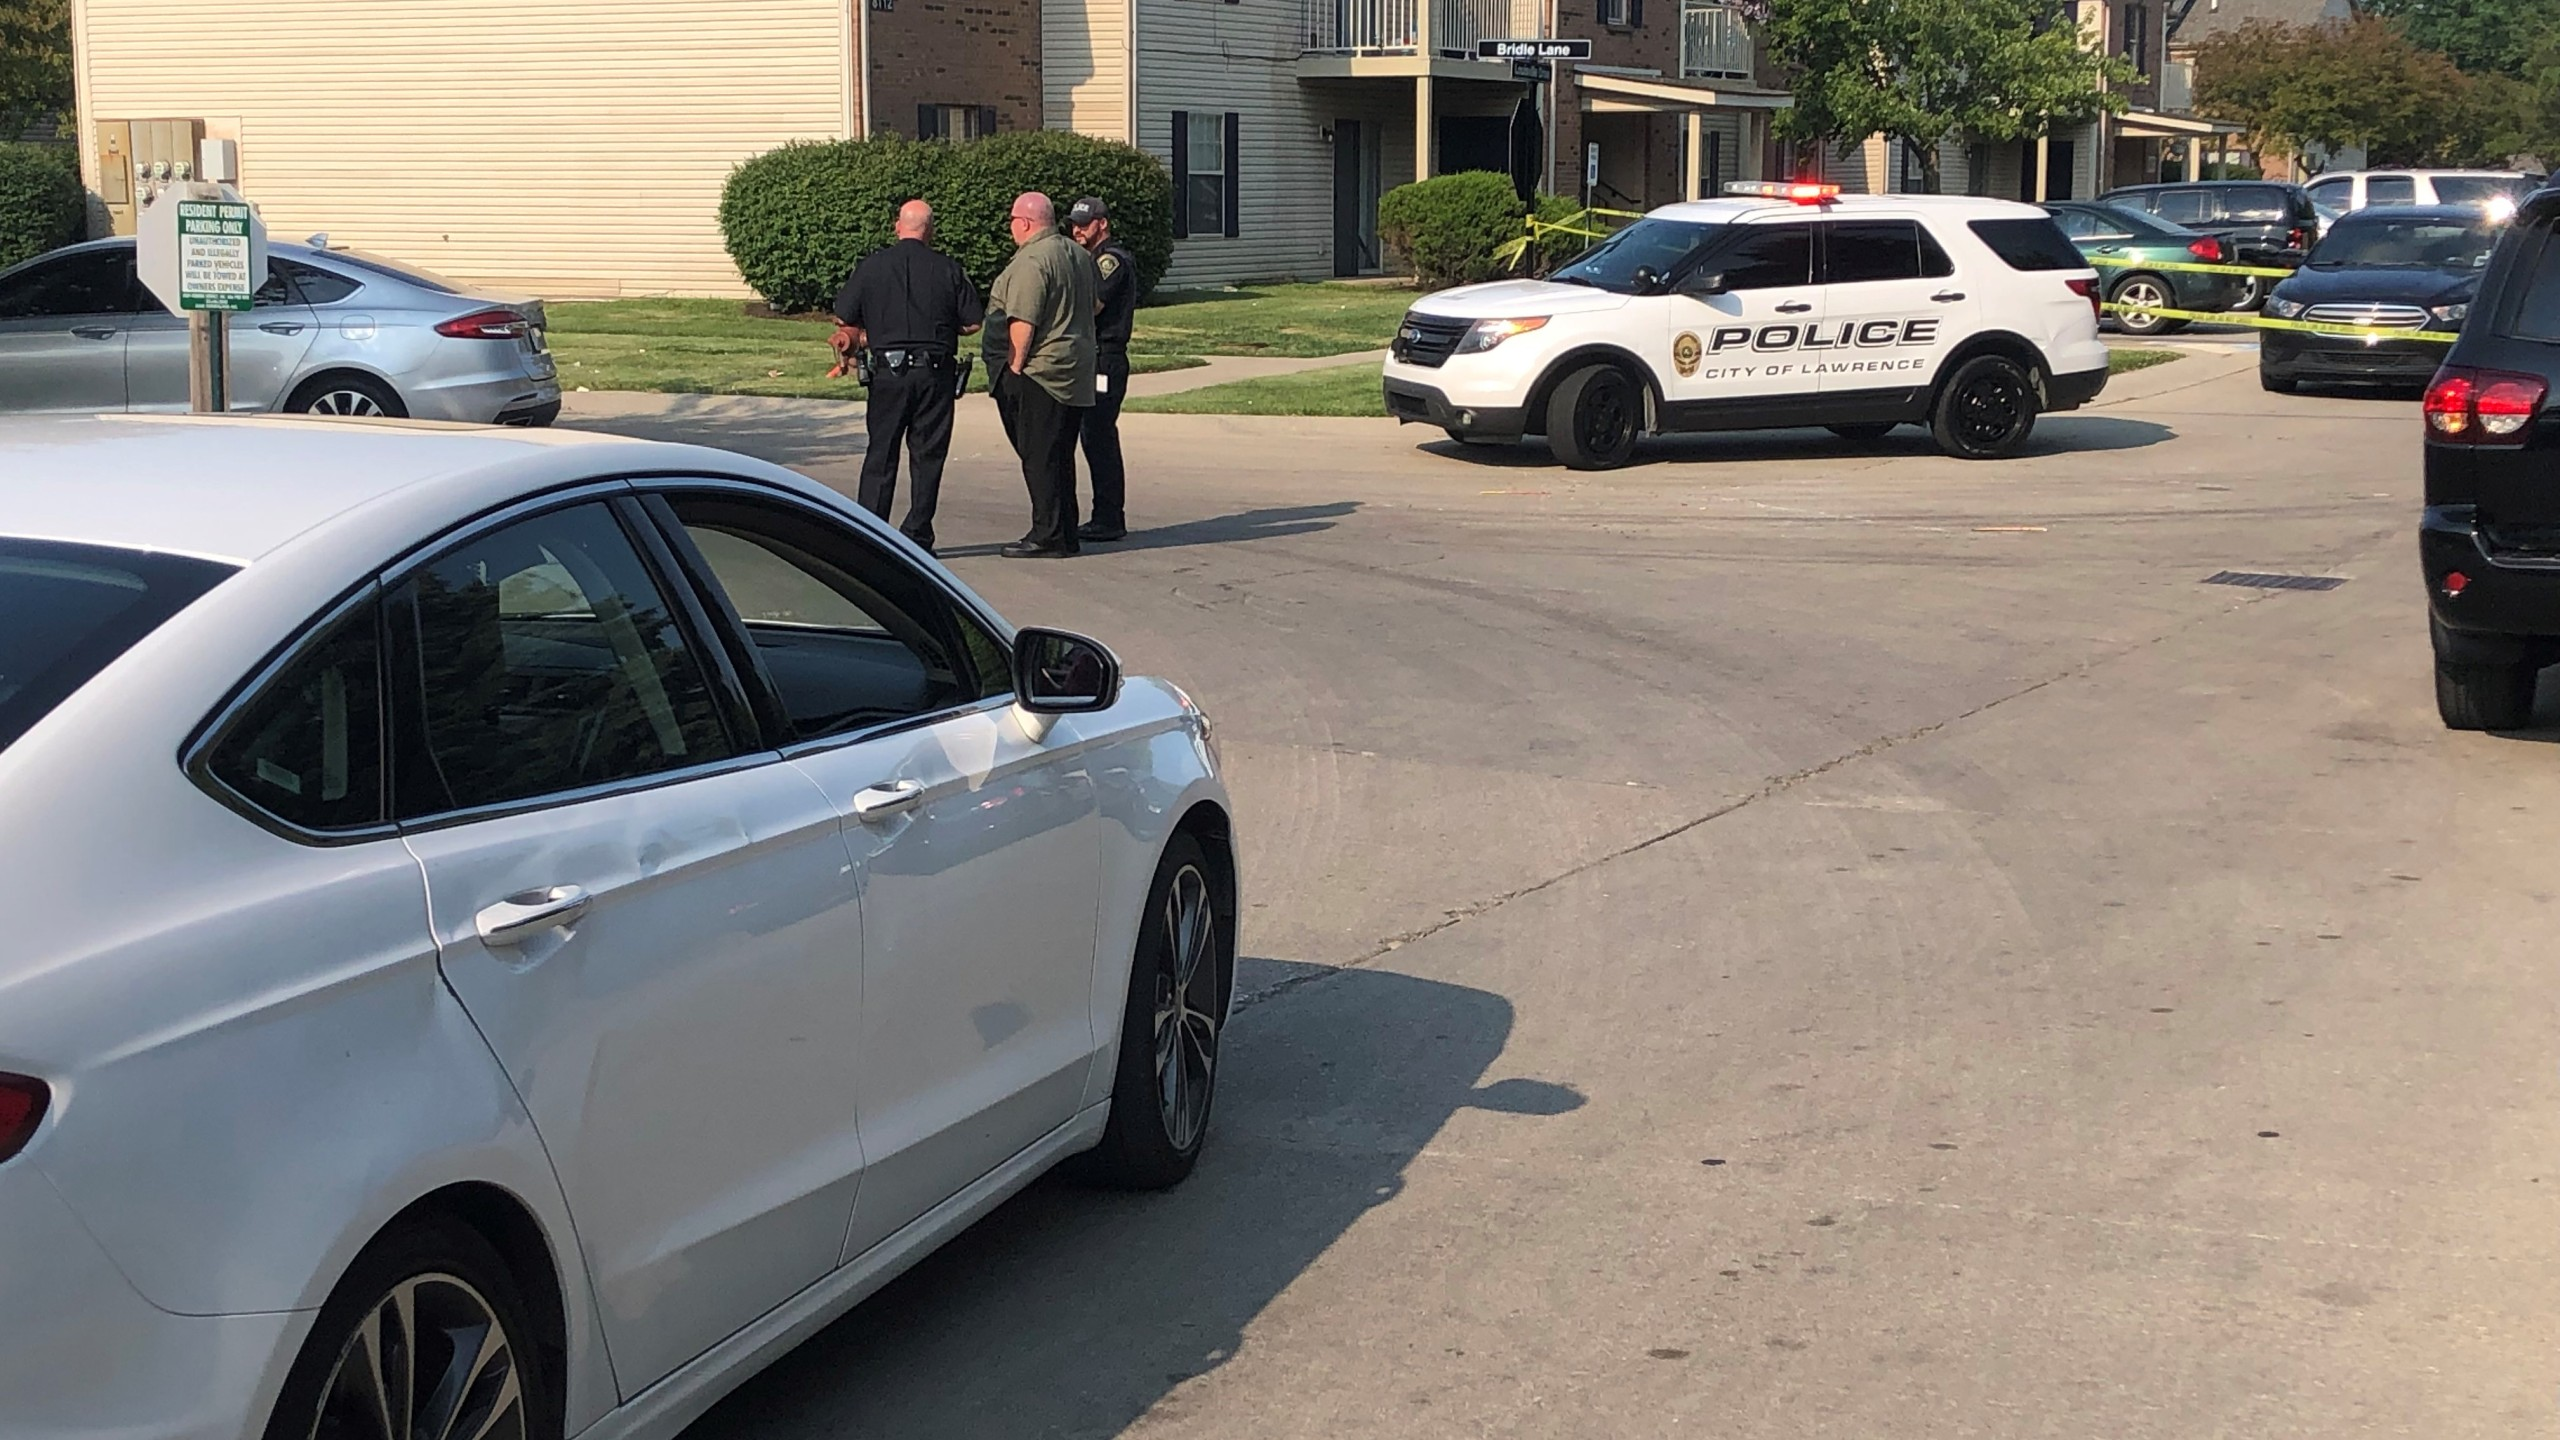 Person in critical condition after being shot in Lawrence